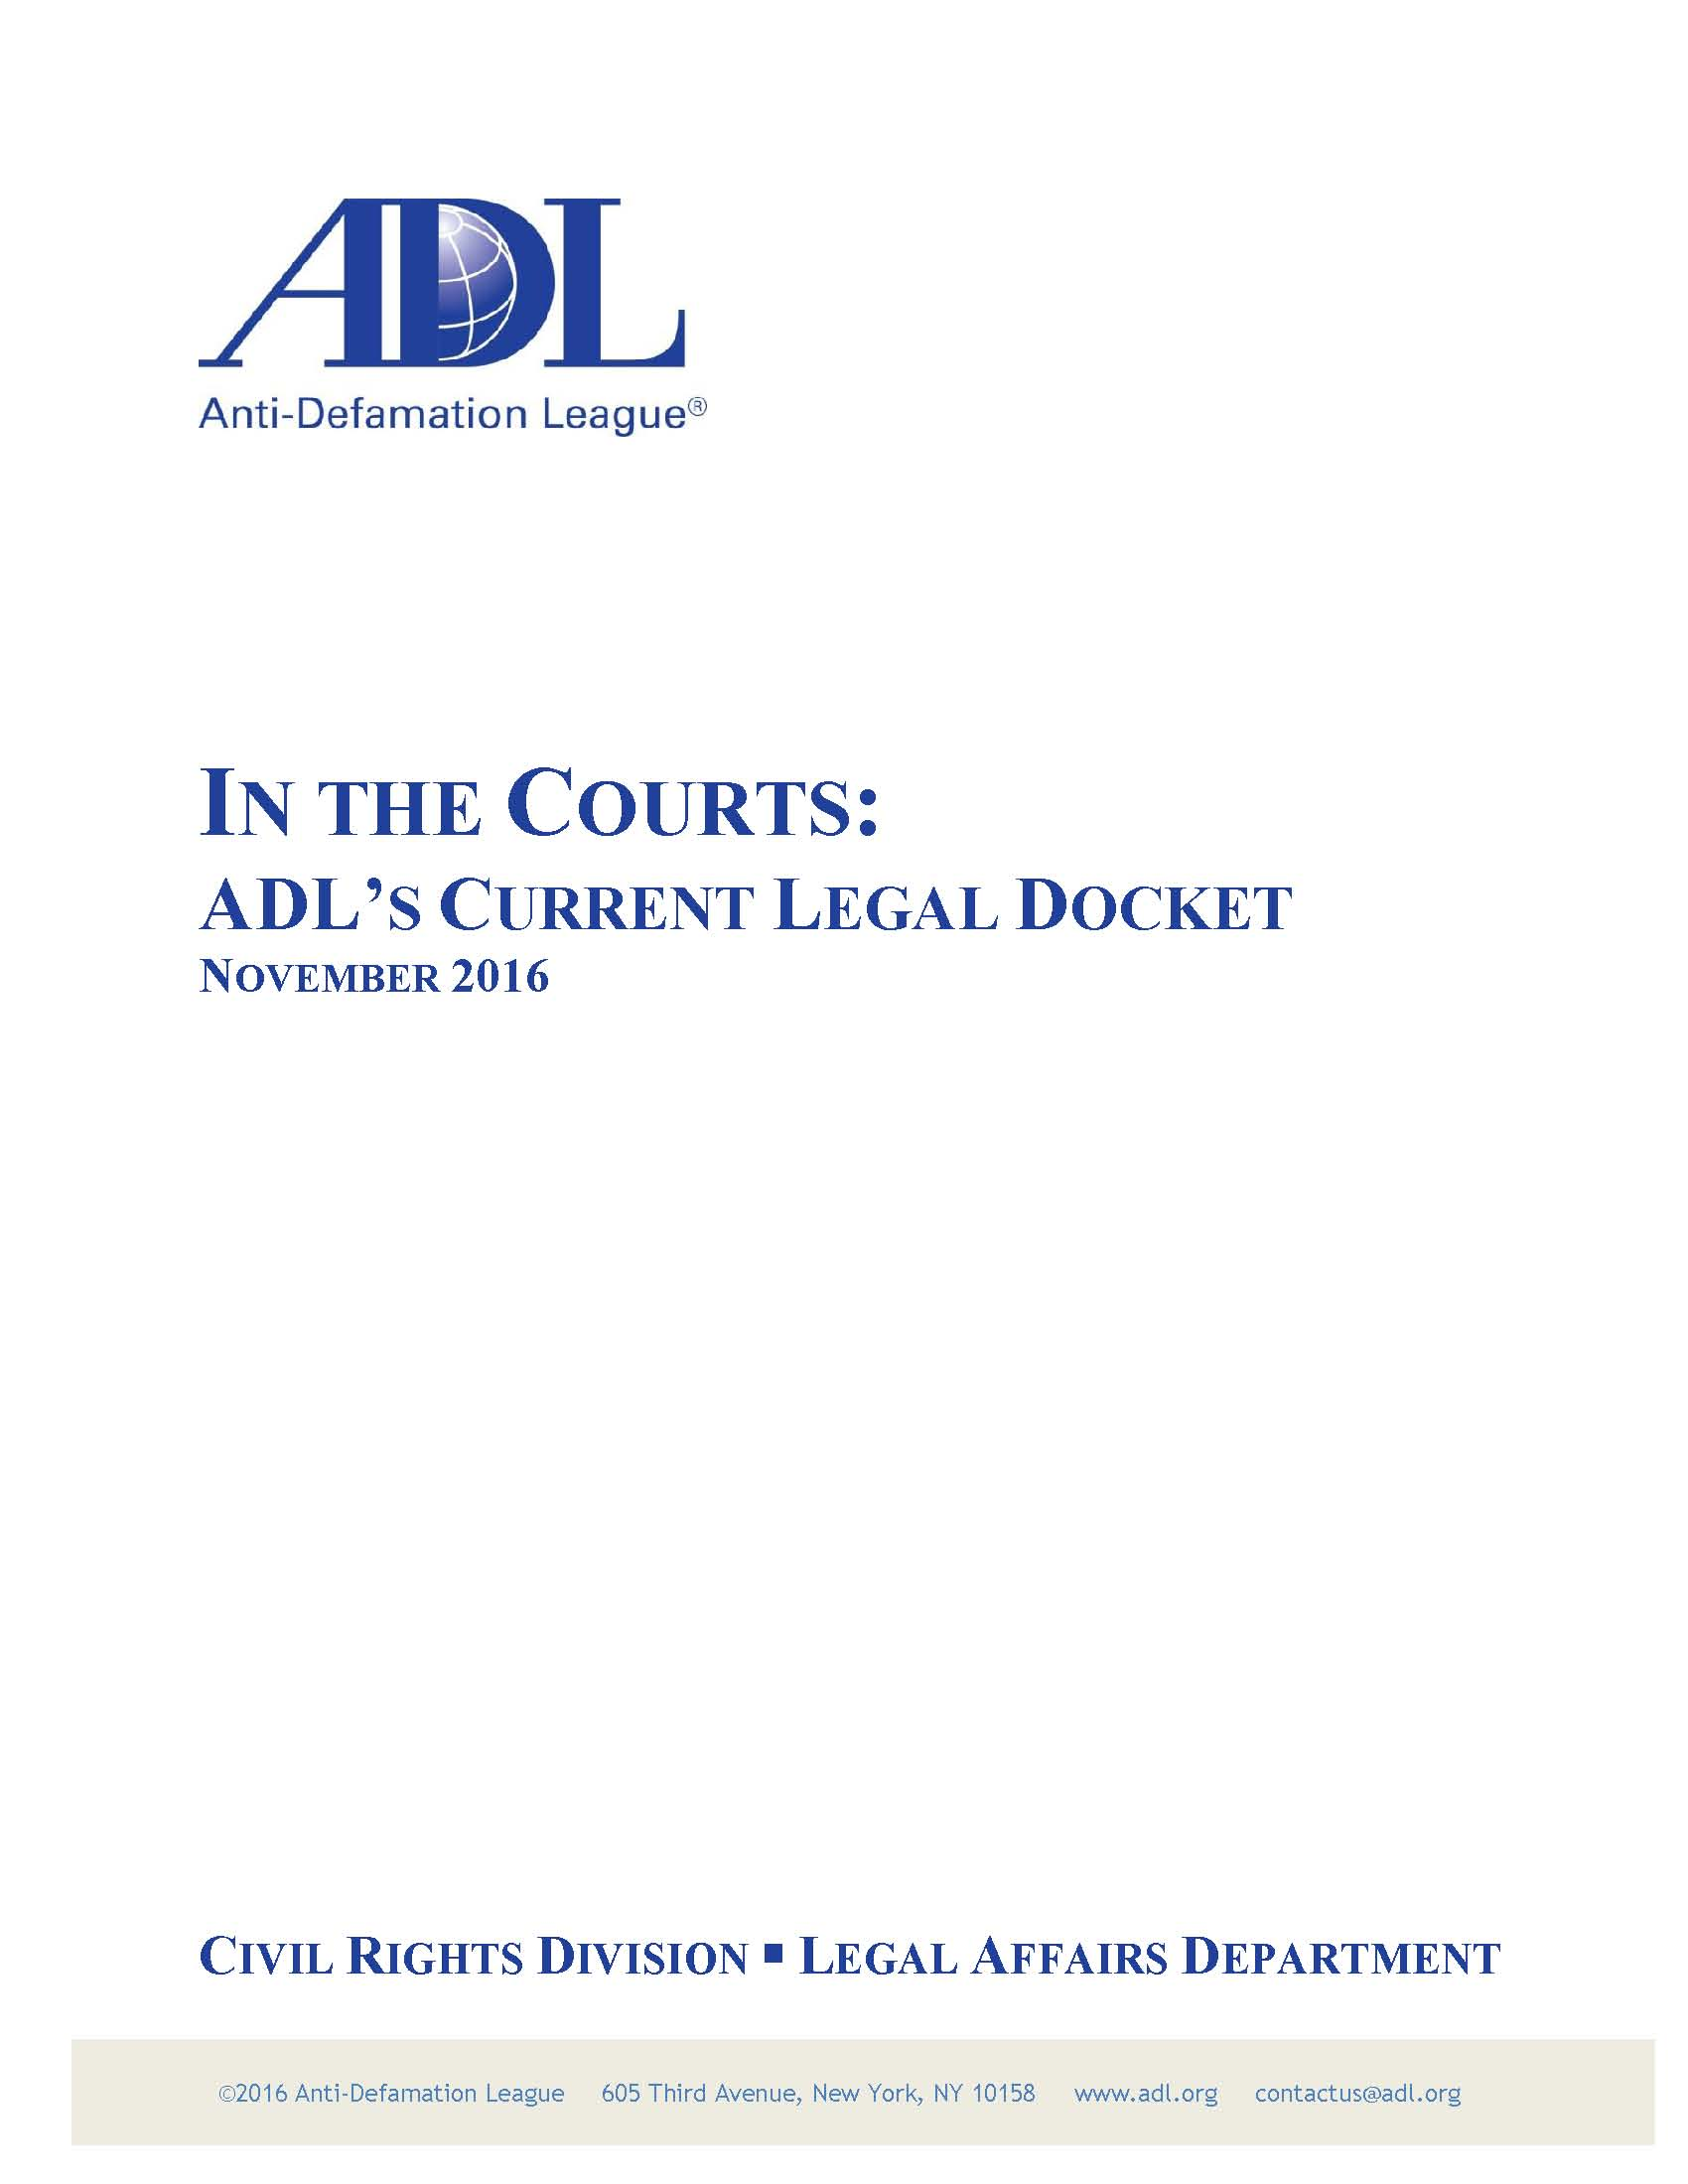 ADL in the Courts: November 2016